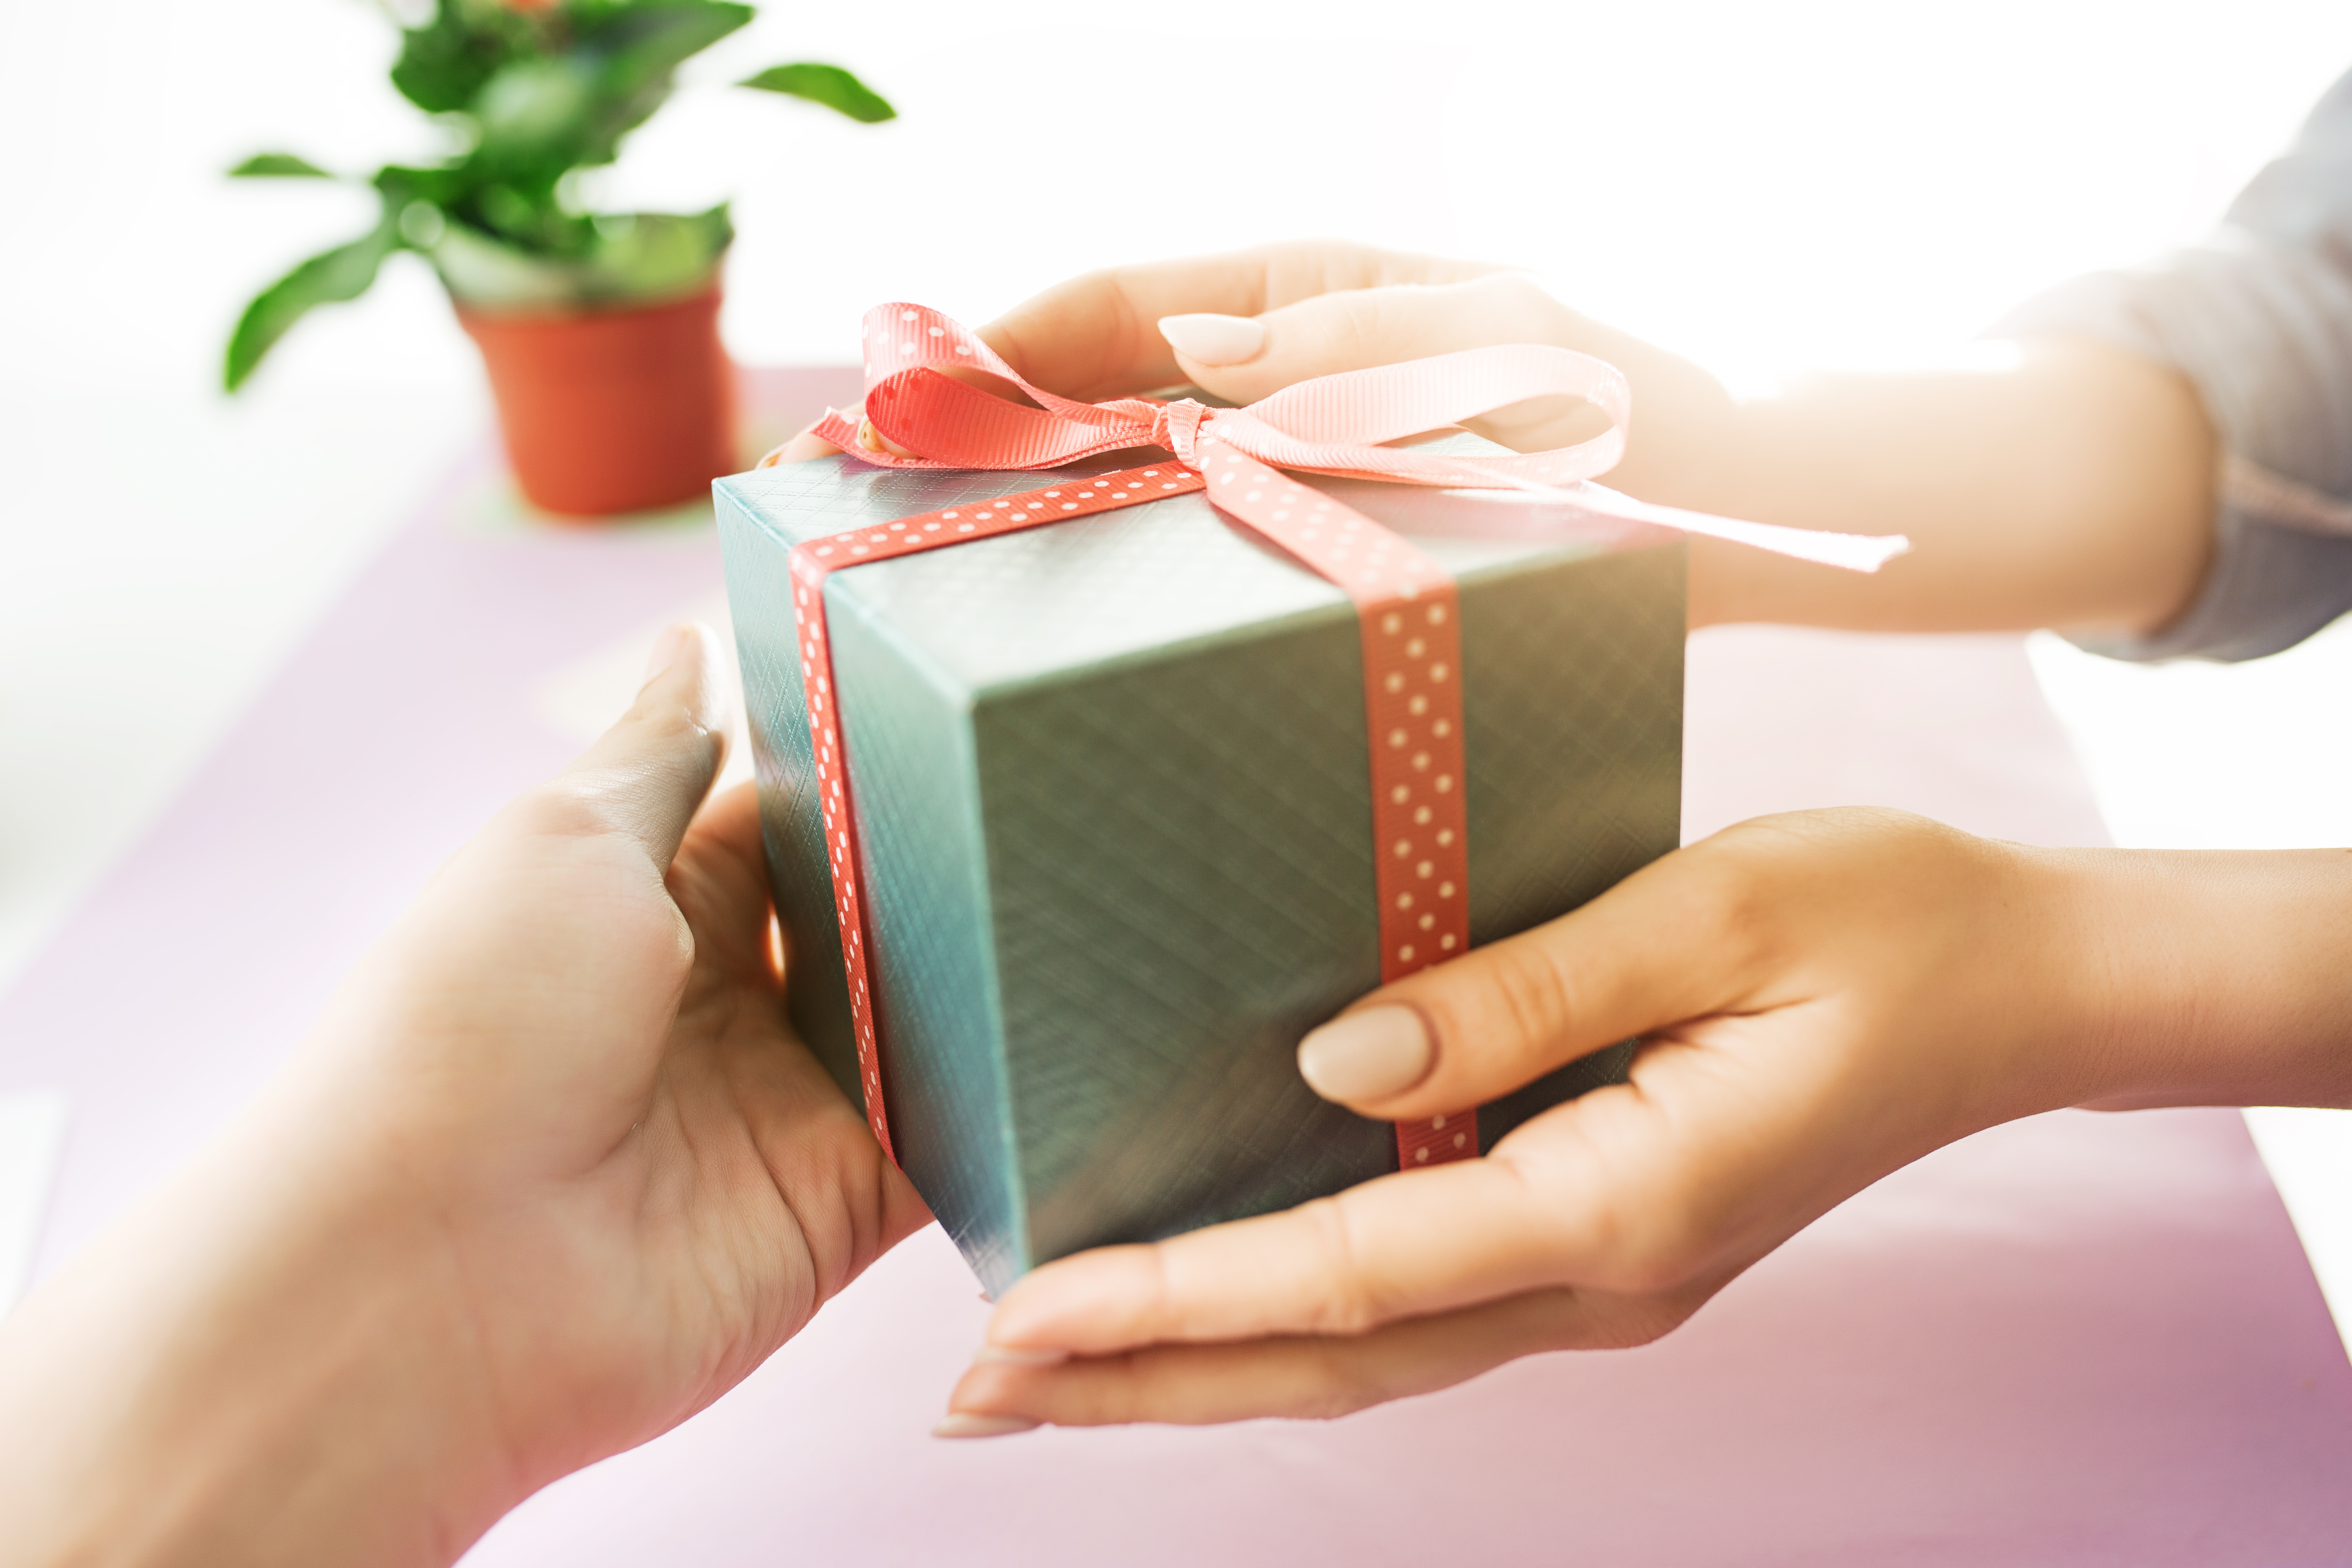 Close-up of female hands holding a present. The trendy pink desk.